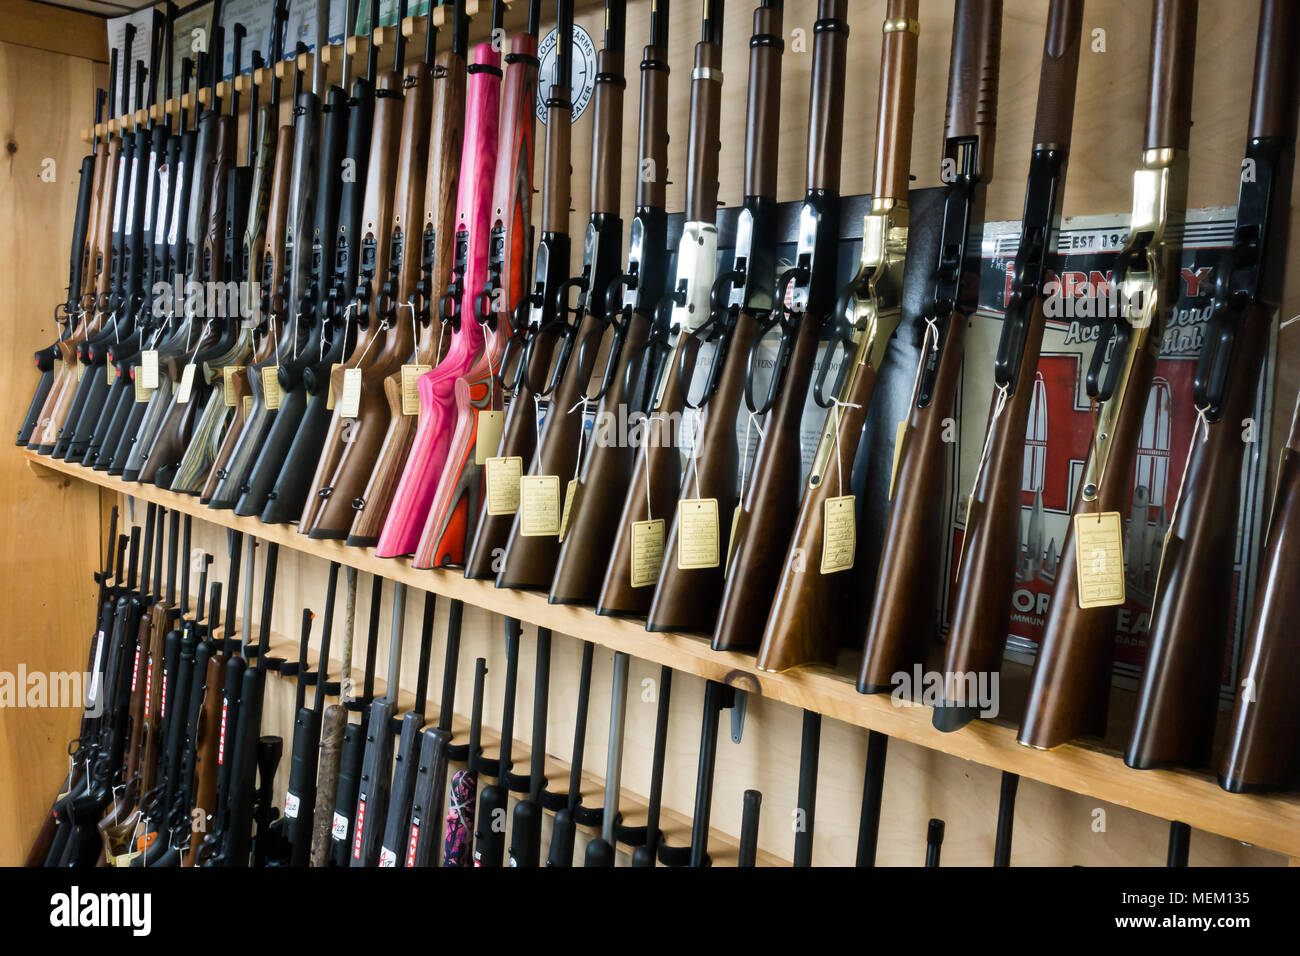 racks-full-of-rimfire-rifles-on-sale-in-a-gun-shop-MEM135.jpg